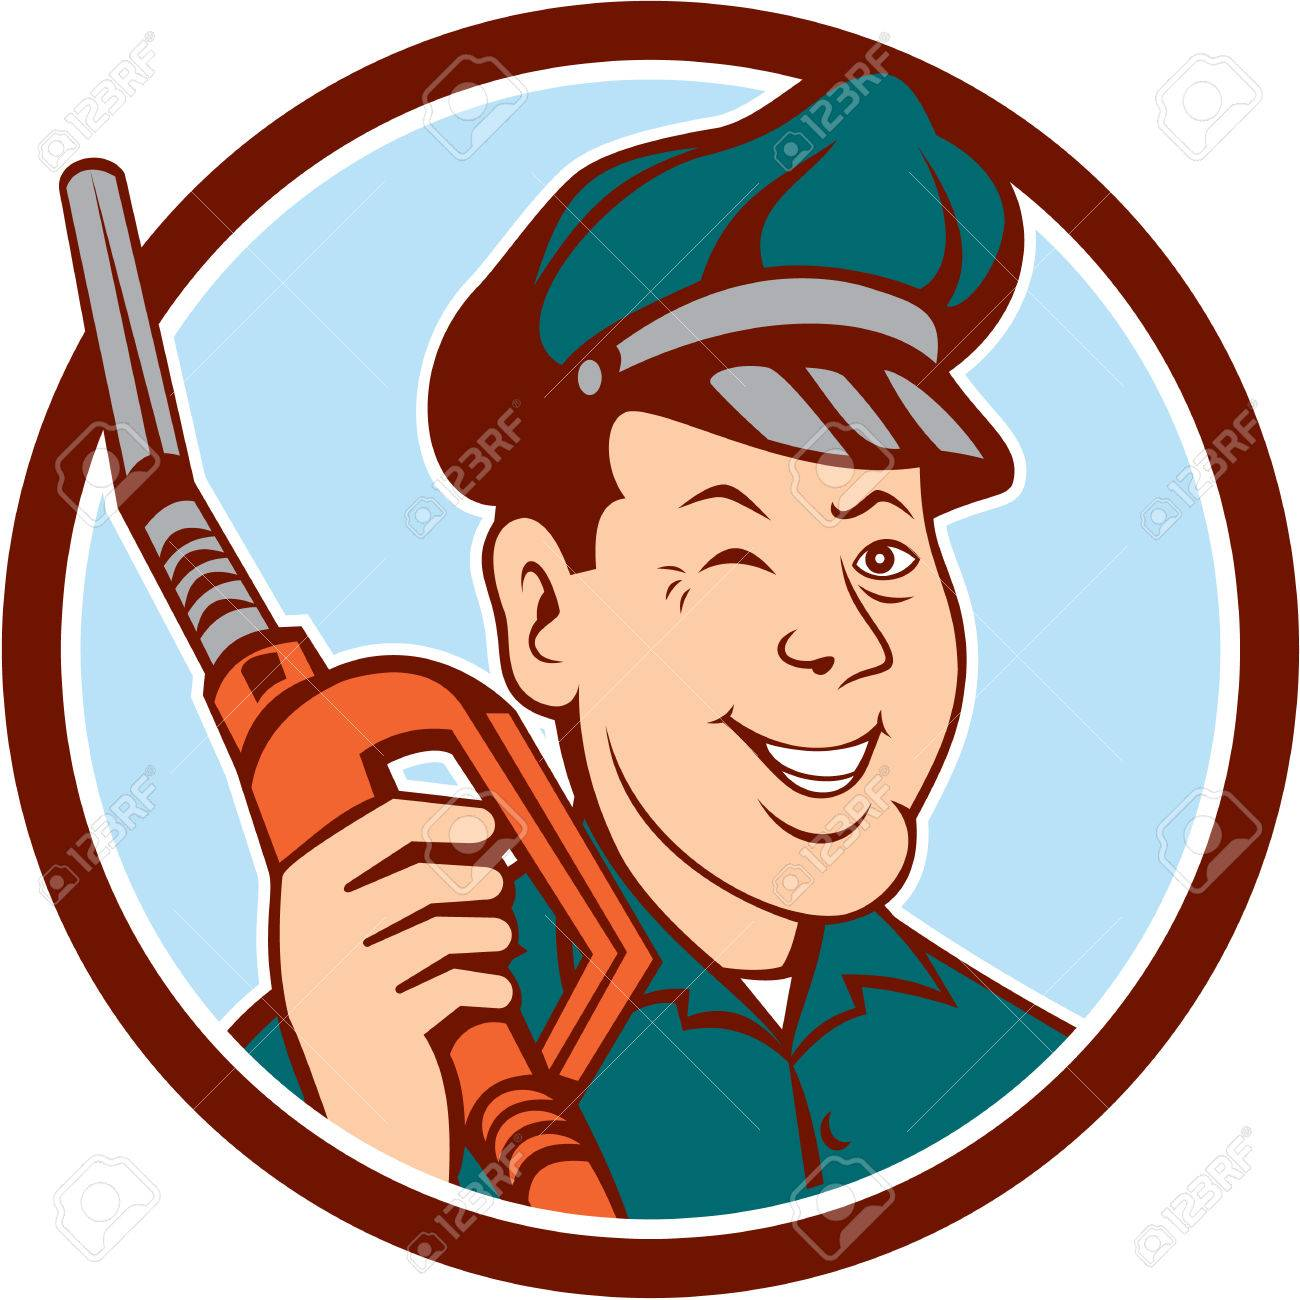 Illustration of gas gasoline fuel attendant worker winking smiling holding fuel pump nozzle - 35641210-Illustration-of-gas-gasoline-fuel-attendant-worker-winking-smiling-holding-fuel-pump-nozzle--Stock-Vector